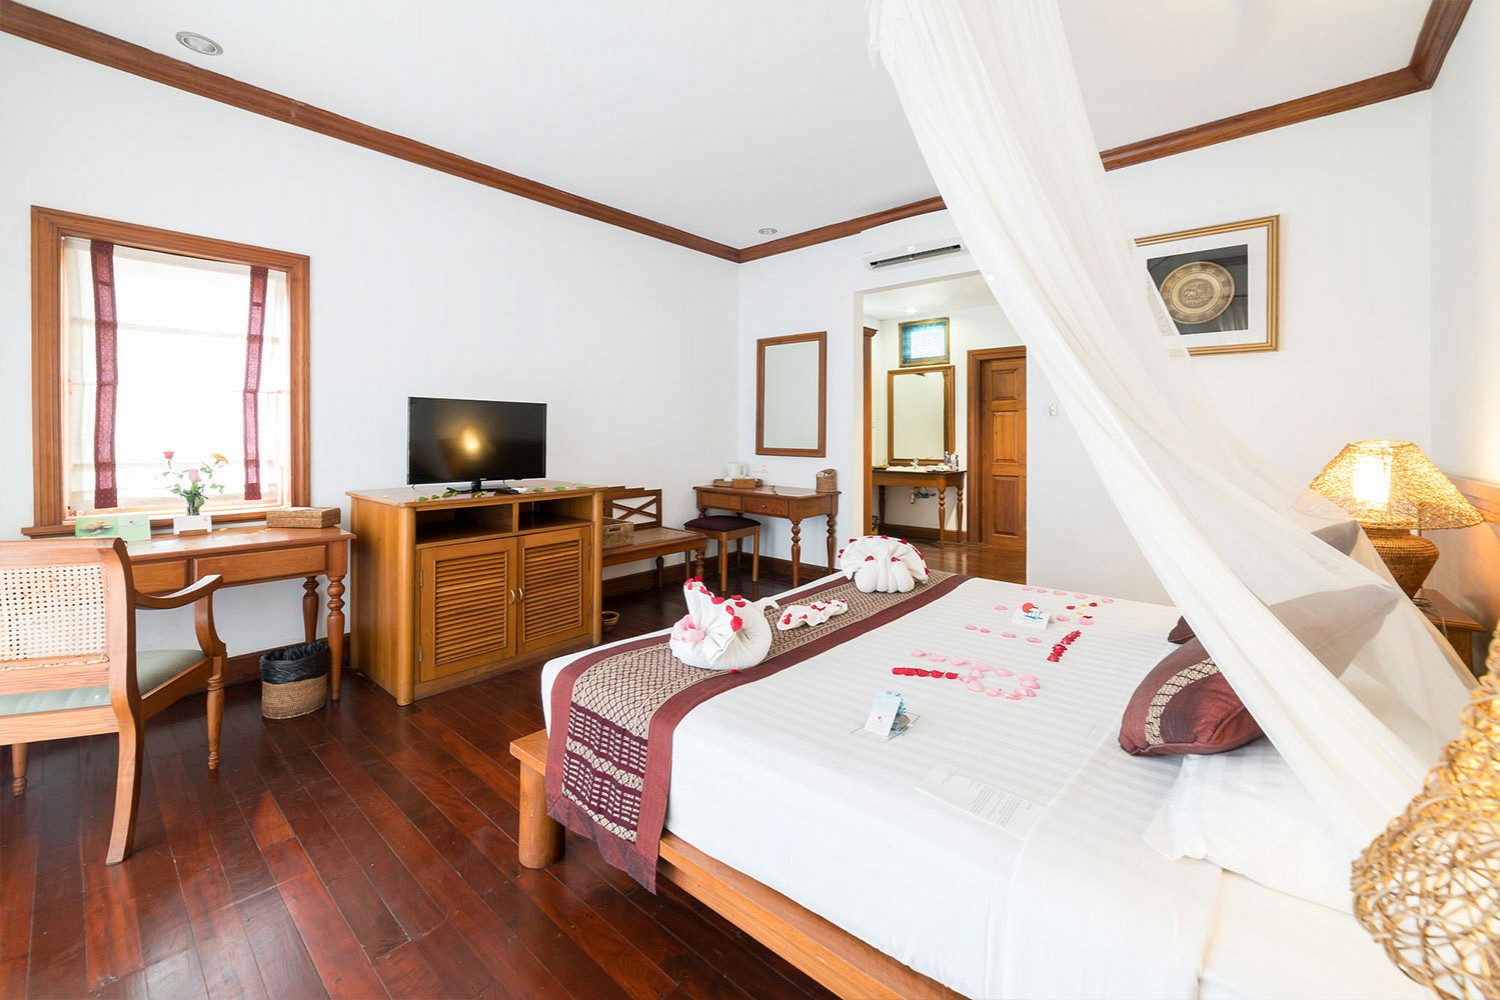 Hotels in ngwesaung, 5 star hotels in ngwe saung